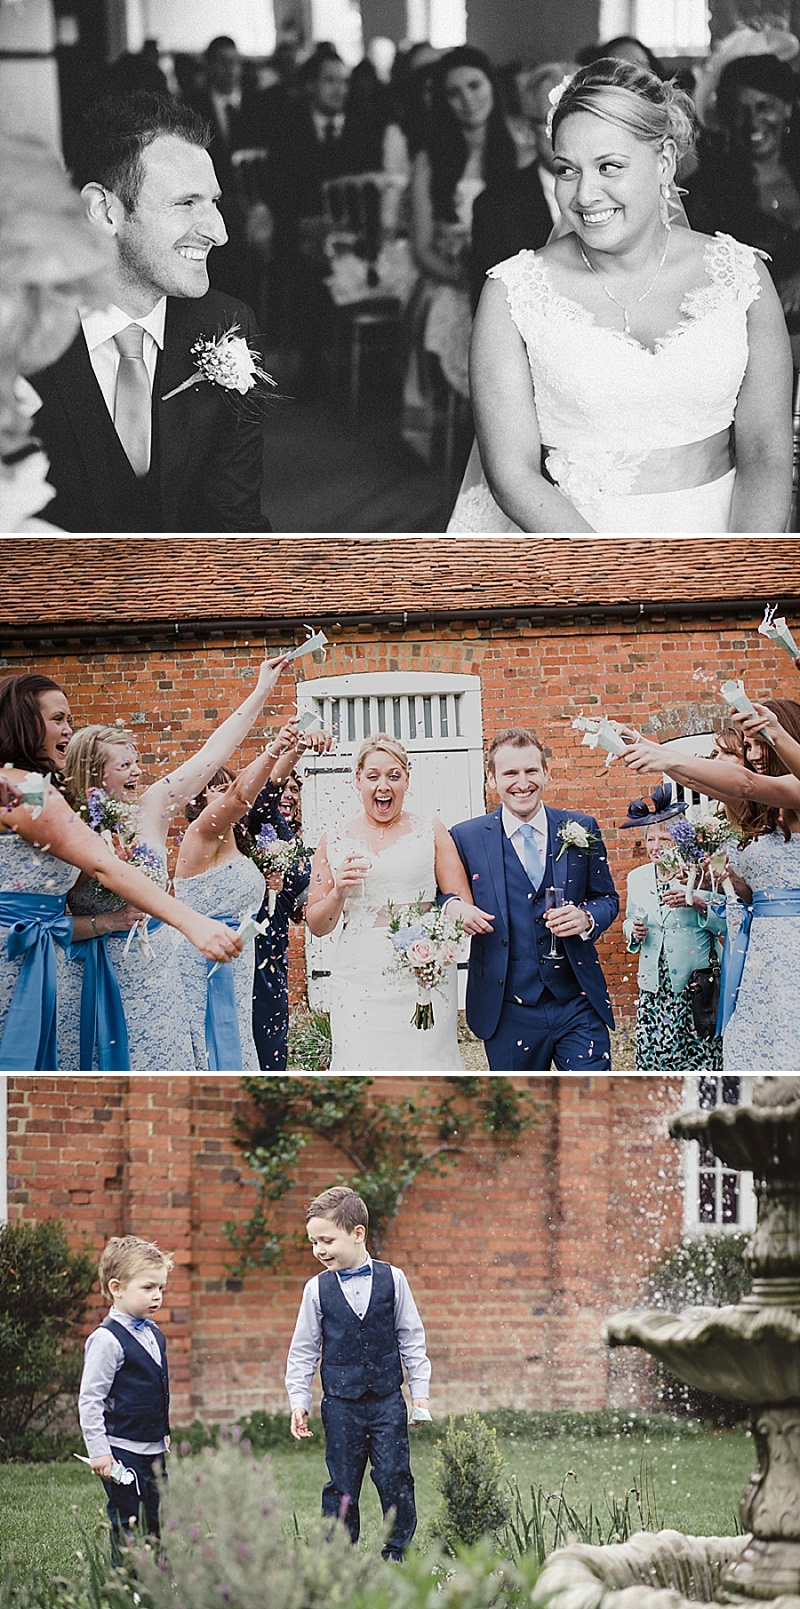 Rustic Wedding With A Baby Pink And Blue Colour Scheme At Lillibrooke Manor In Maidenhead With Bride In Essence Of Australia D1367 And Blue Abode Shoes From Dune And Bridesmaids In Dessy With Groom In Suit From Next 4